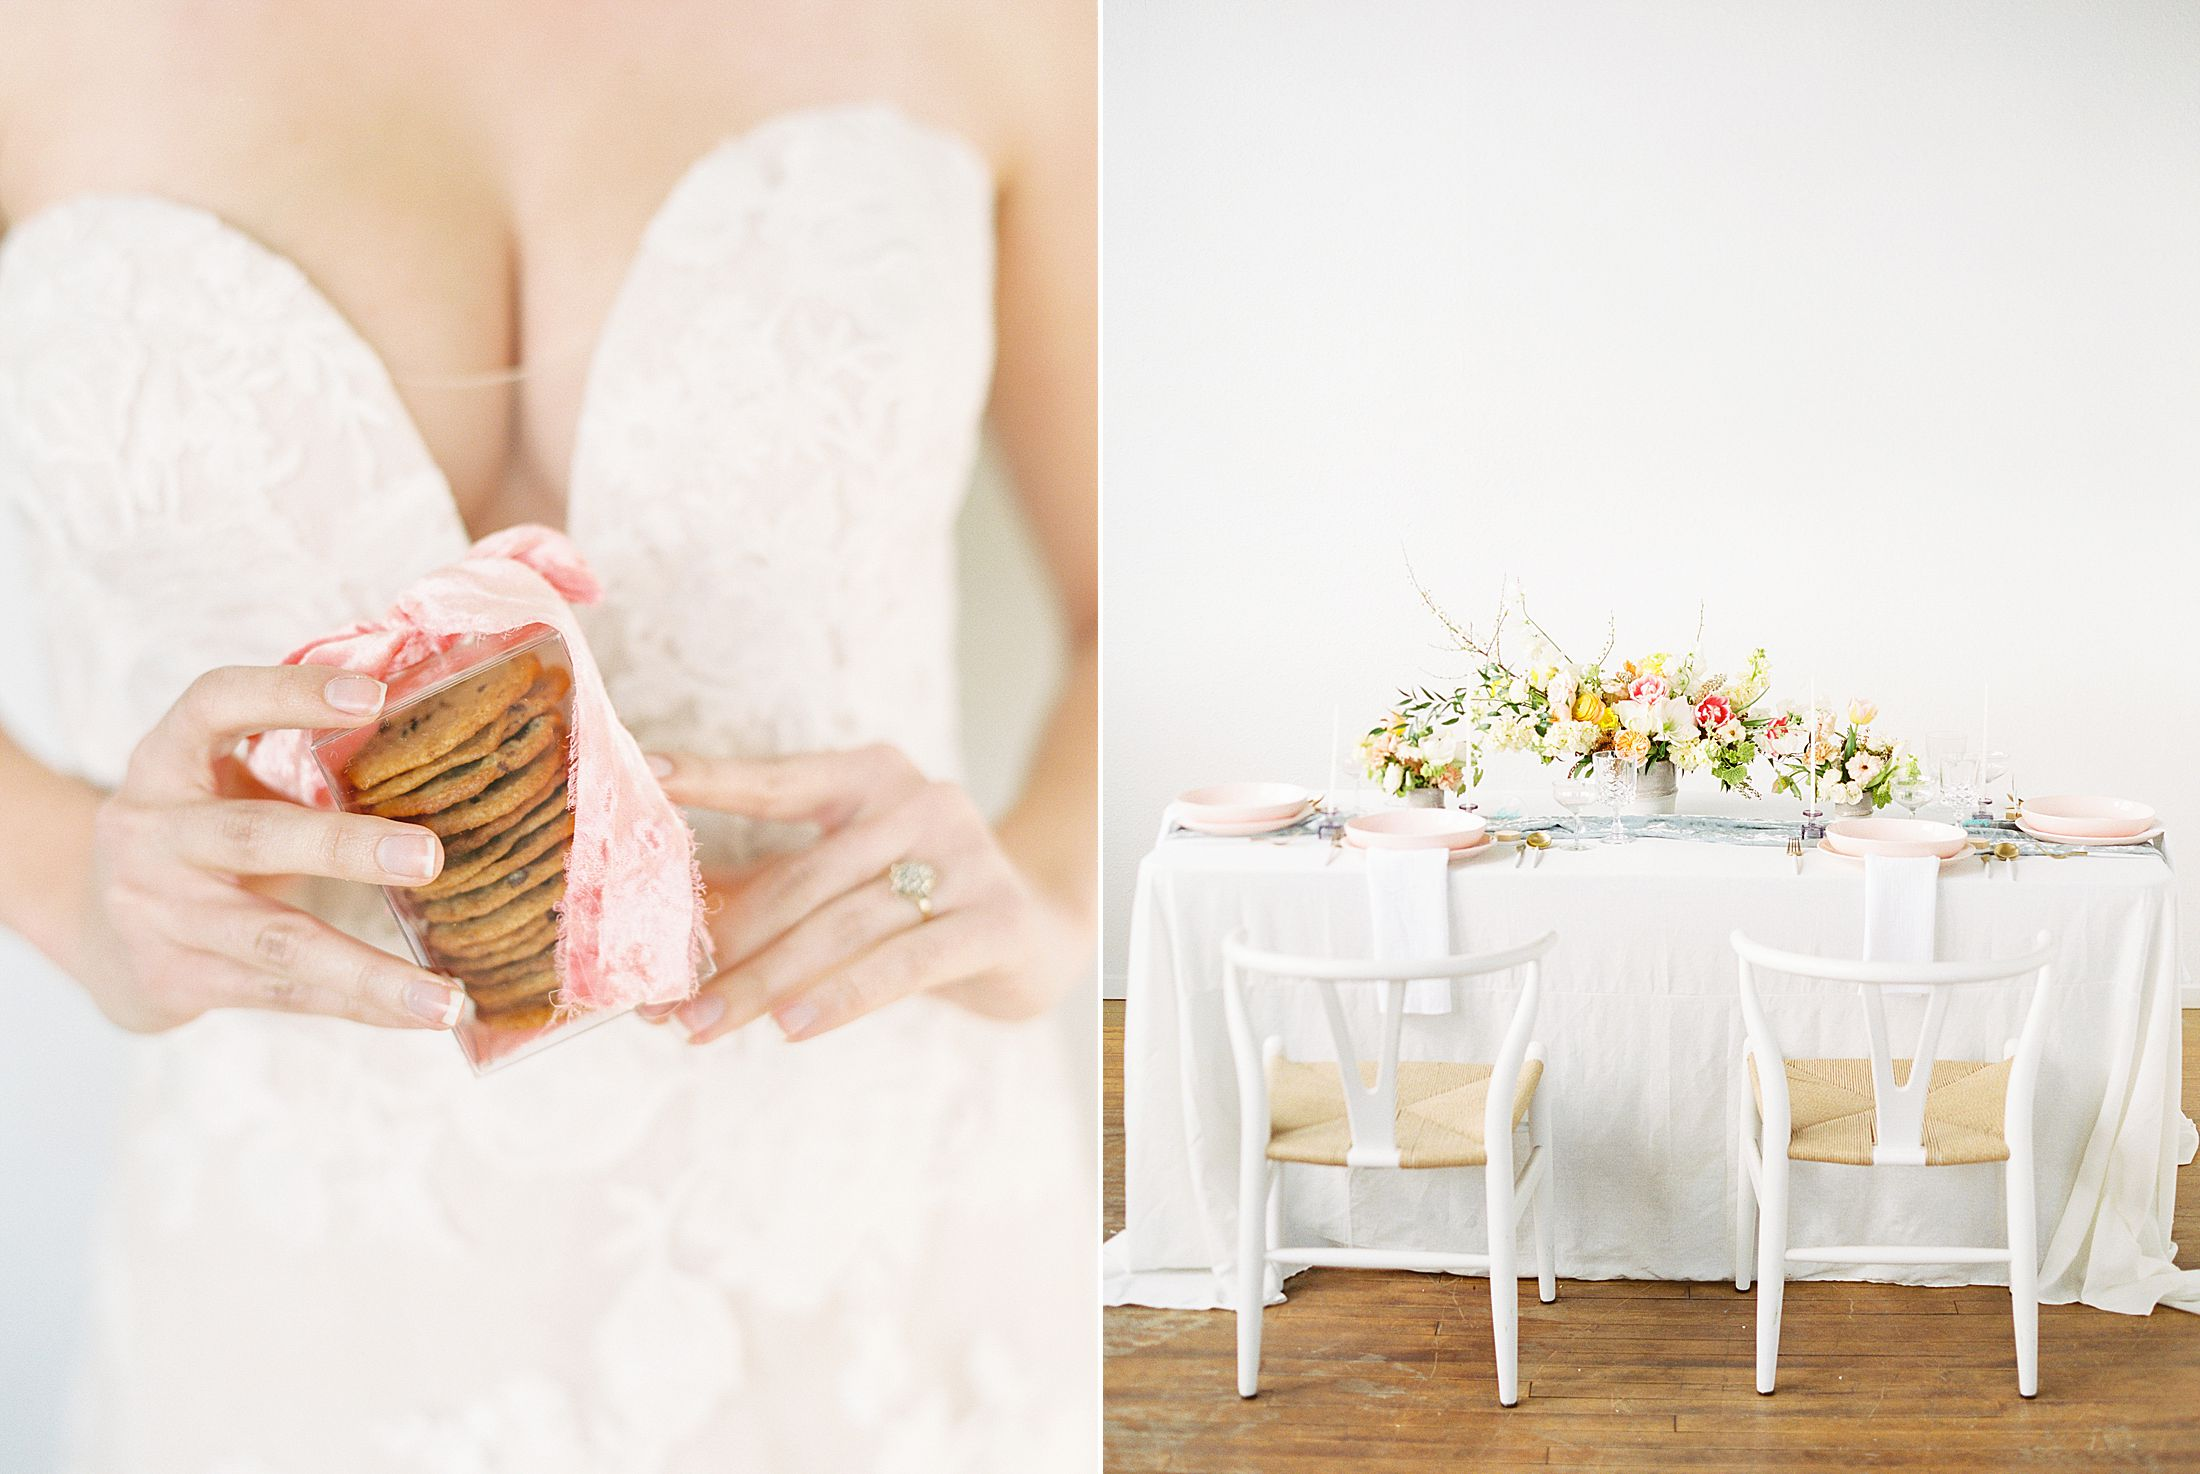 Bay Area Spring Wedding Inspiration - Ashley Baumgartner - Inspired By This - Party Crush Studio and Lens of Lenox Videography - Bay Area Wedding Photography_0023.jpg